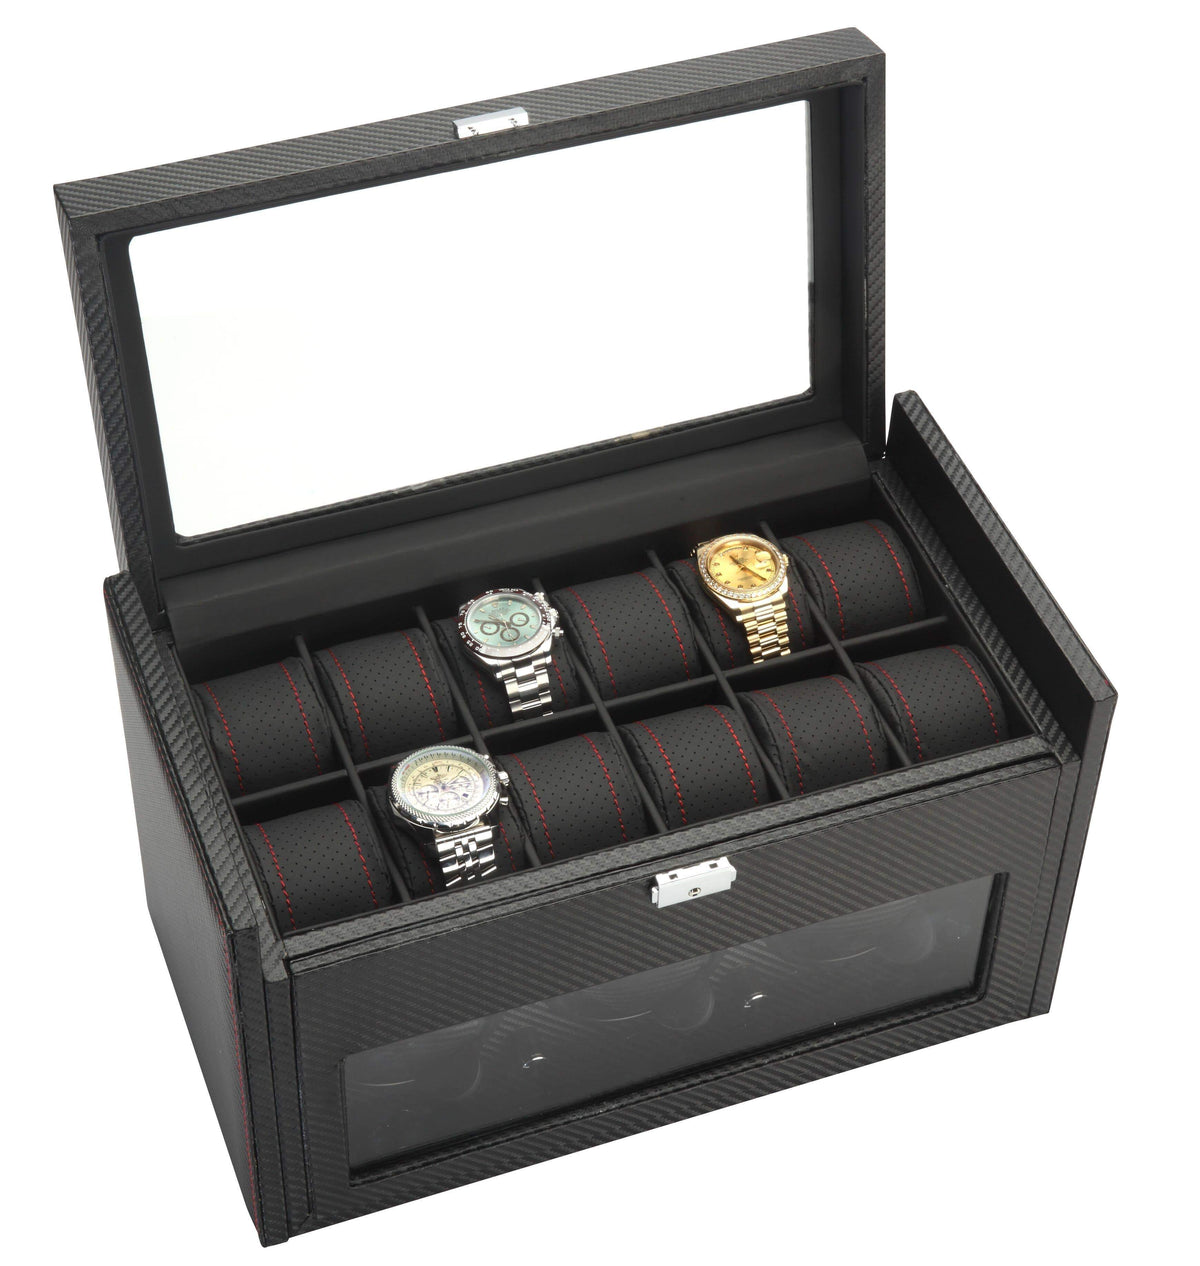 Diplomat Black Carbon Fiber Pattern Three Watch Winder with Black Leatherette Interior and Additional Storage for 12 Watches and Smart Internal Bi-Directional Timer Control Armadillo Safe and Vault